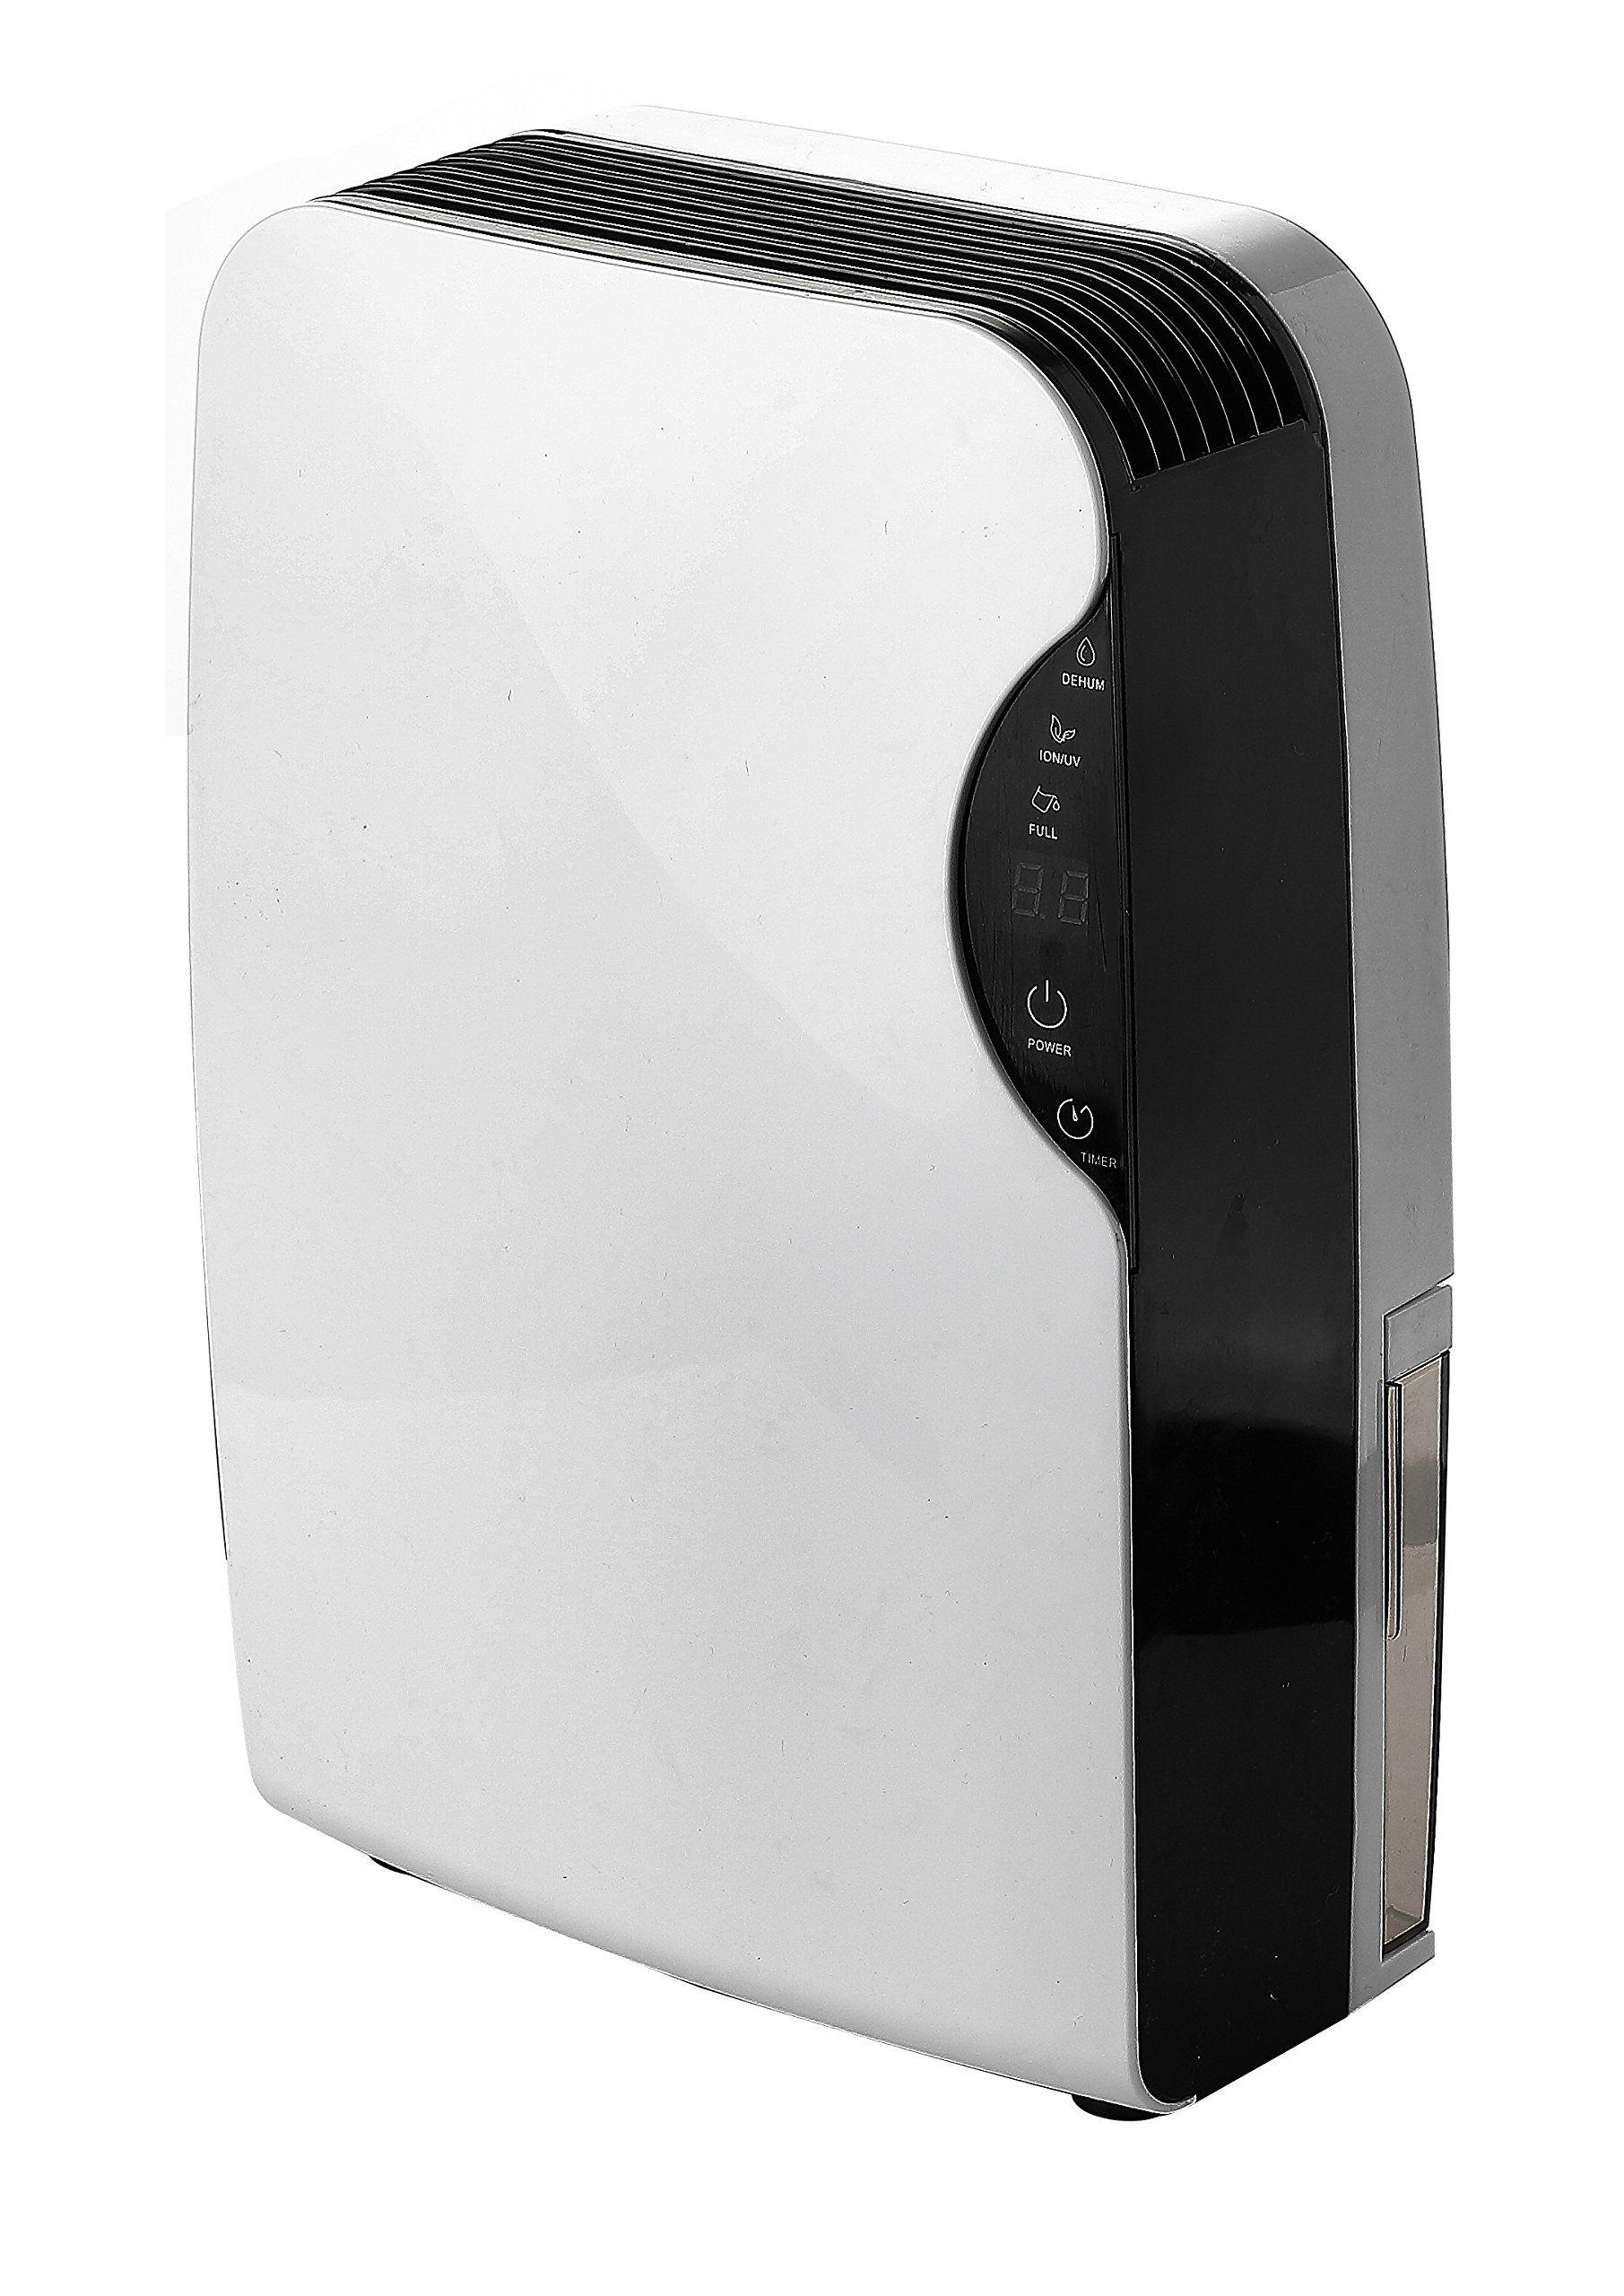 Eurgeen Small Semiconductor Dehumidifier Touch-Screen Air Dryer Whisper-Quiet Air Purification - Ideal for Small Rooms and Spaces,Kitchen,Bathroom,Bedroom,Garage,RV